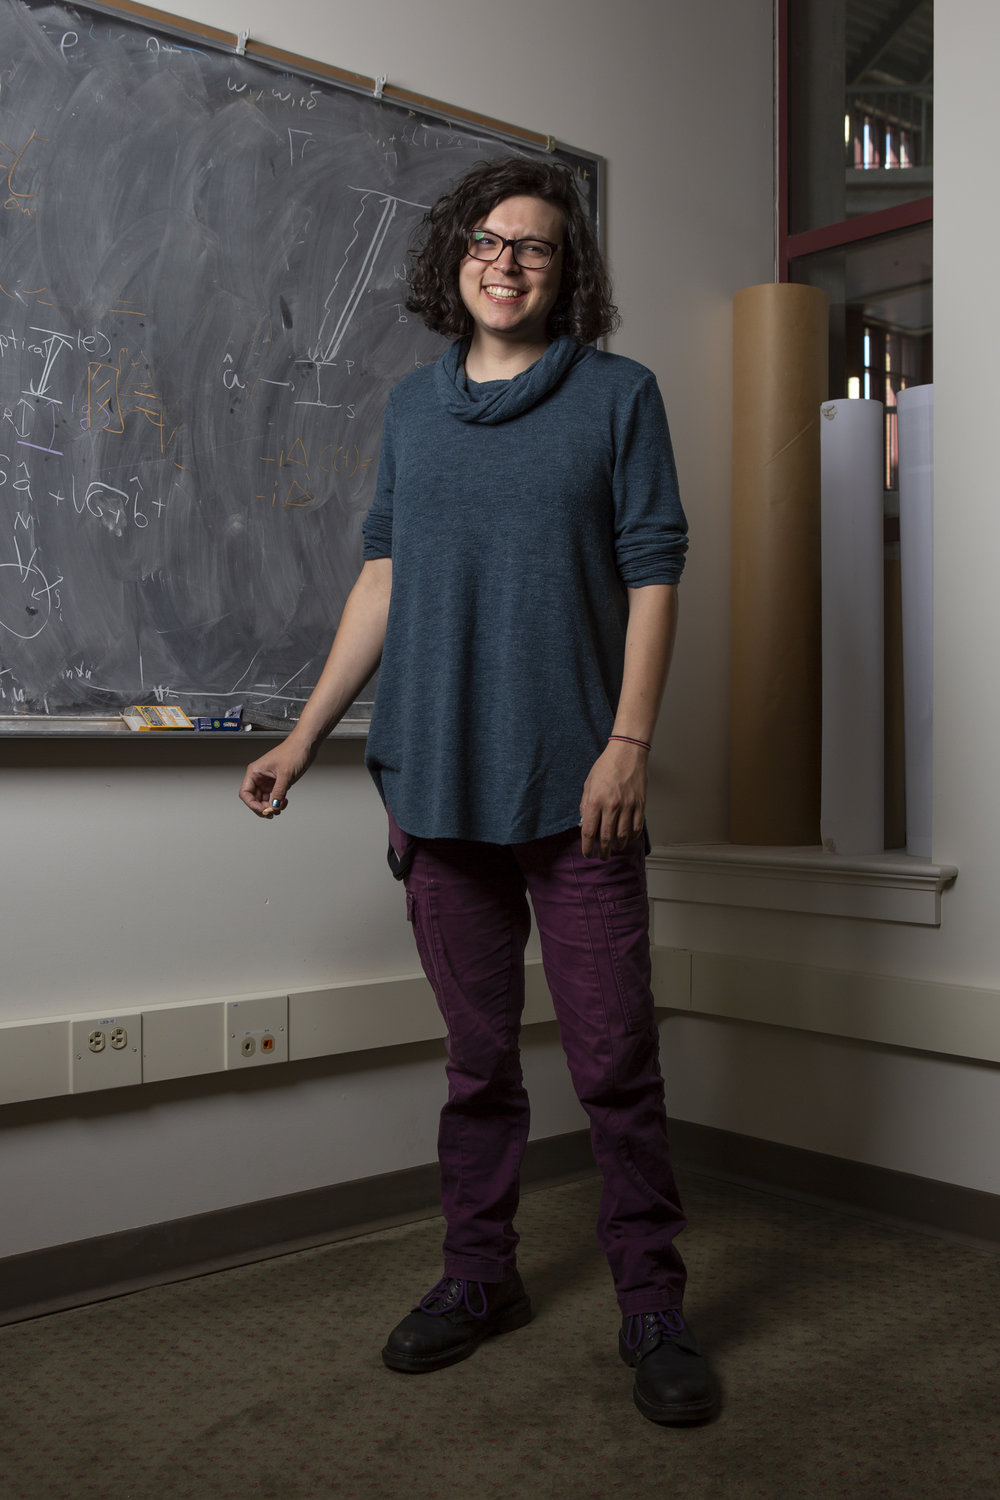 """Tzula Propp is a third-year physics Ph.D. candidate and member of LGBT in STEM. They identify as non-binary and gender-fluid. Though they feel supported by the physics department and their peers, they also struggle with a sense of belonging.  """"I'm too queer for my physics friends and too physics for my queer friends,"""" they said, """"I still get along with both of them, but it's a little bit of fitting in nowhere.""""  Propp studies quantum information theory. Specifically, they use the theories of quantum computing to understand the fundamental limits and tradeoffs of how well we can sense light."""